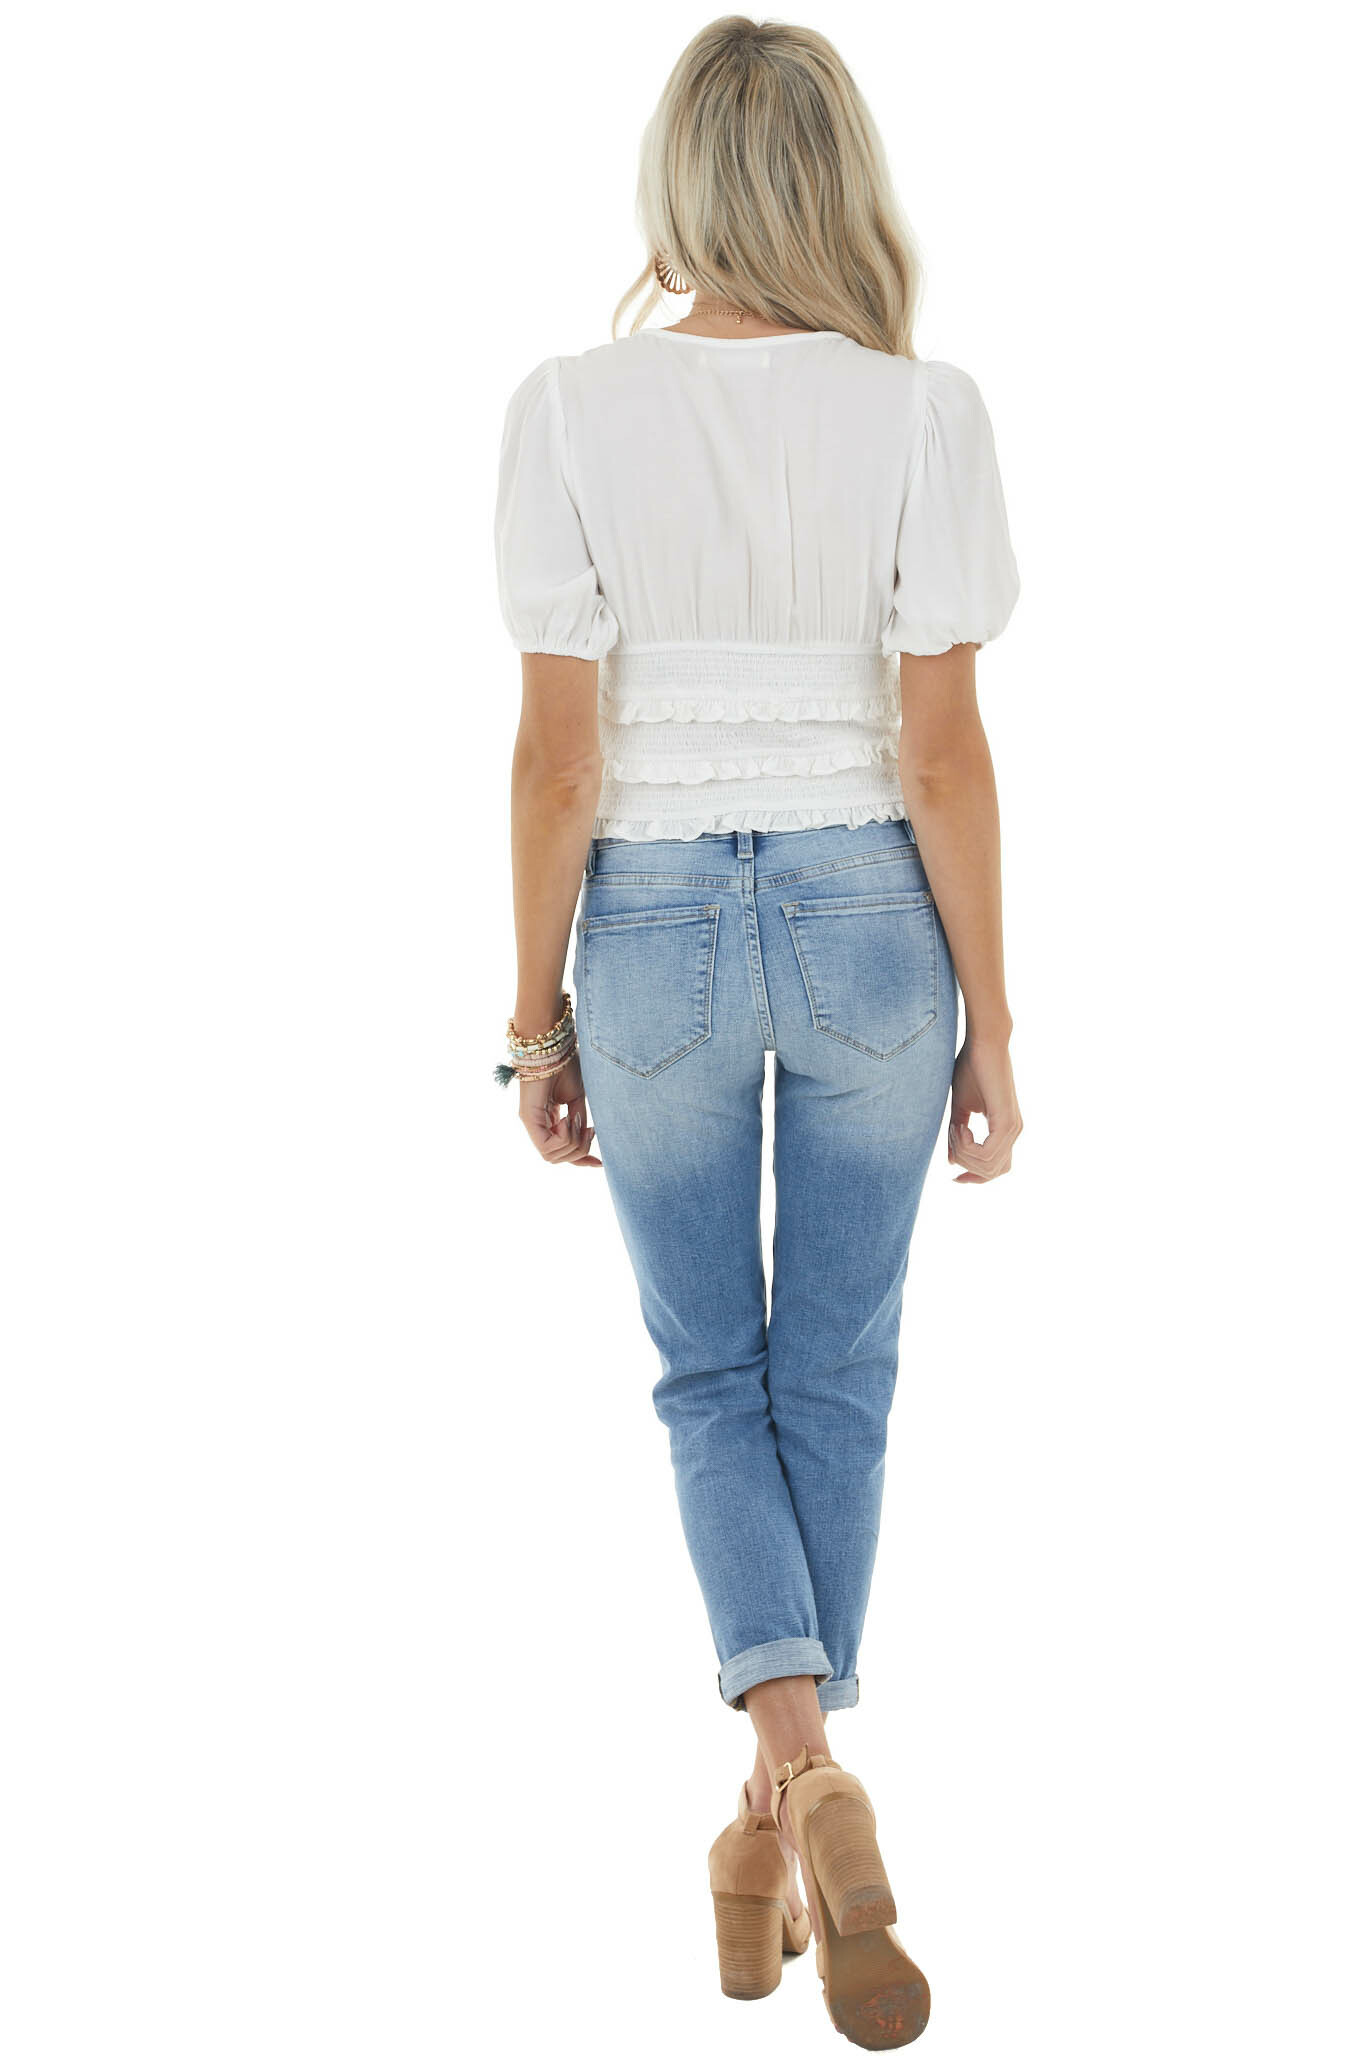 Off White Short Puff Sleeve Blouse with Smocked Detail